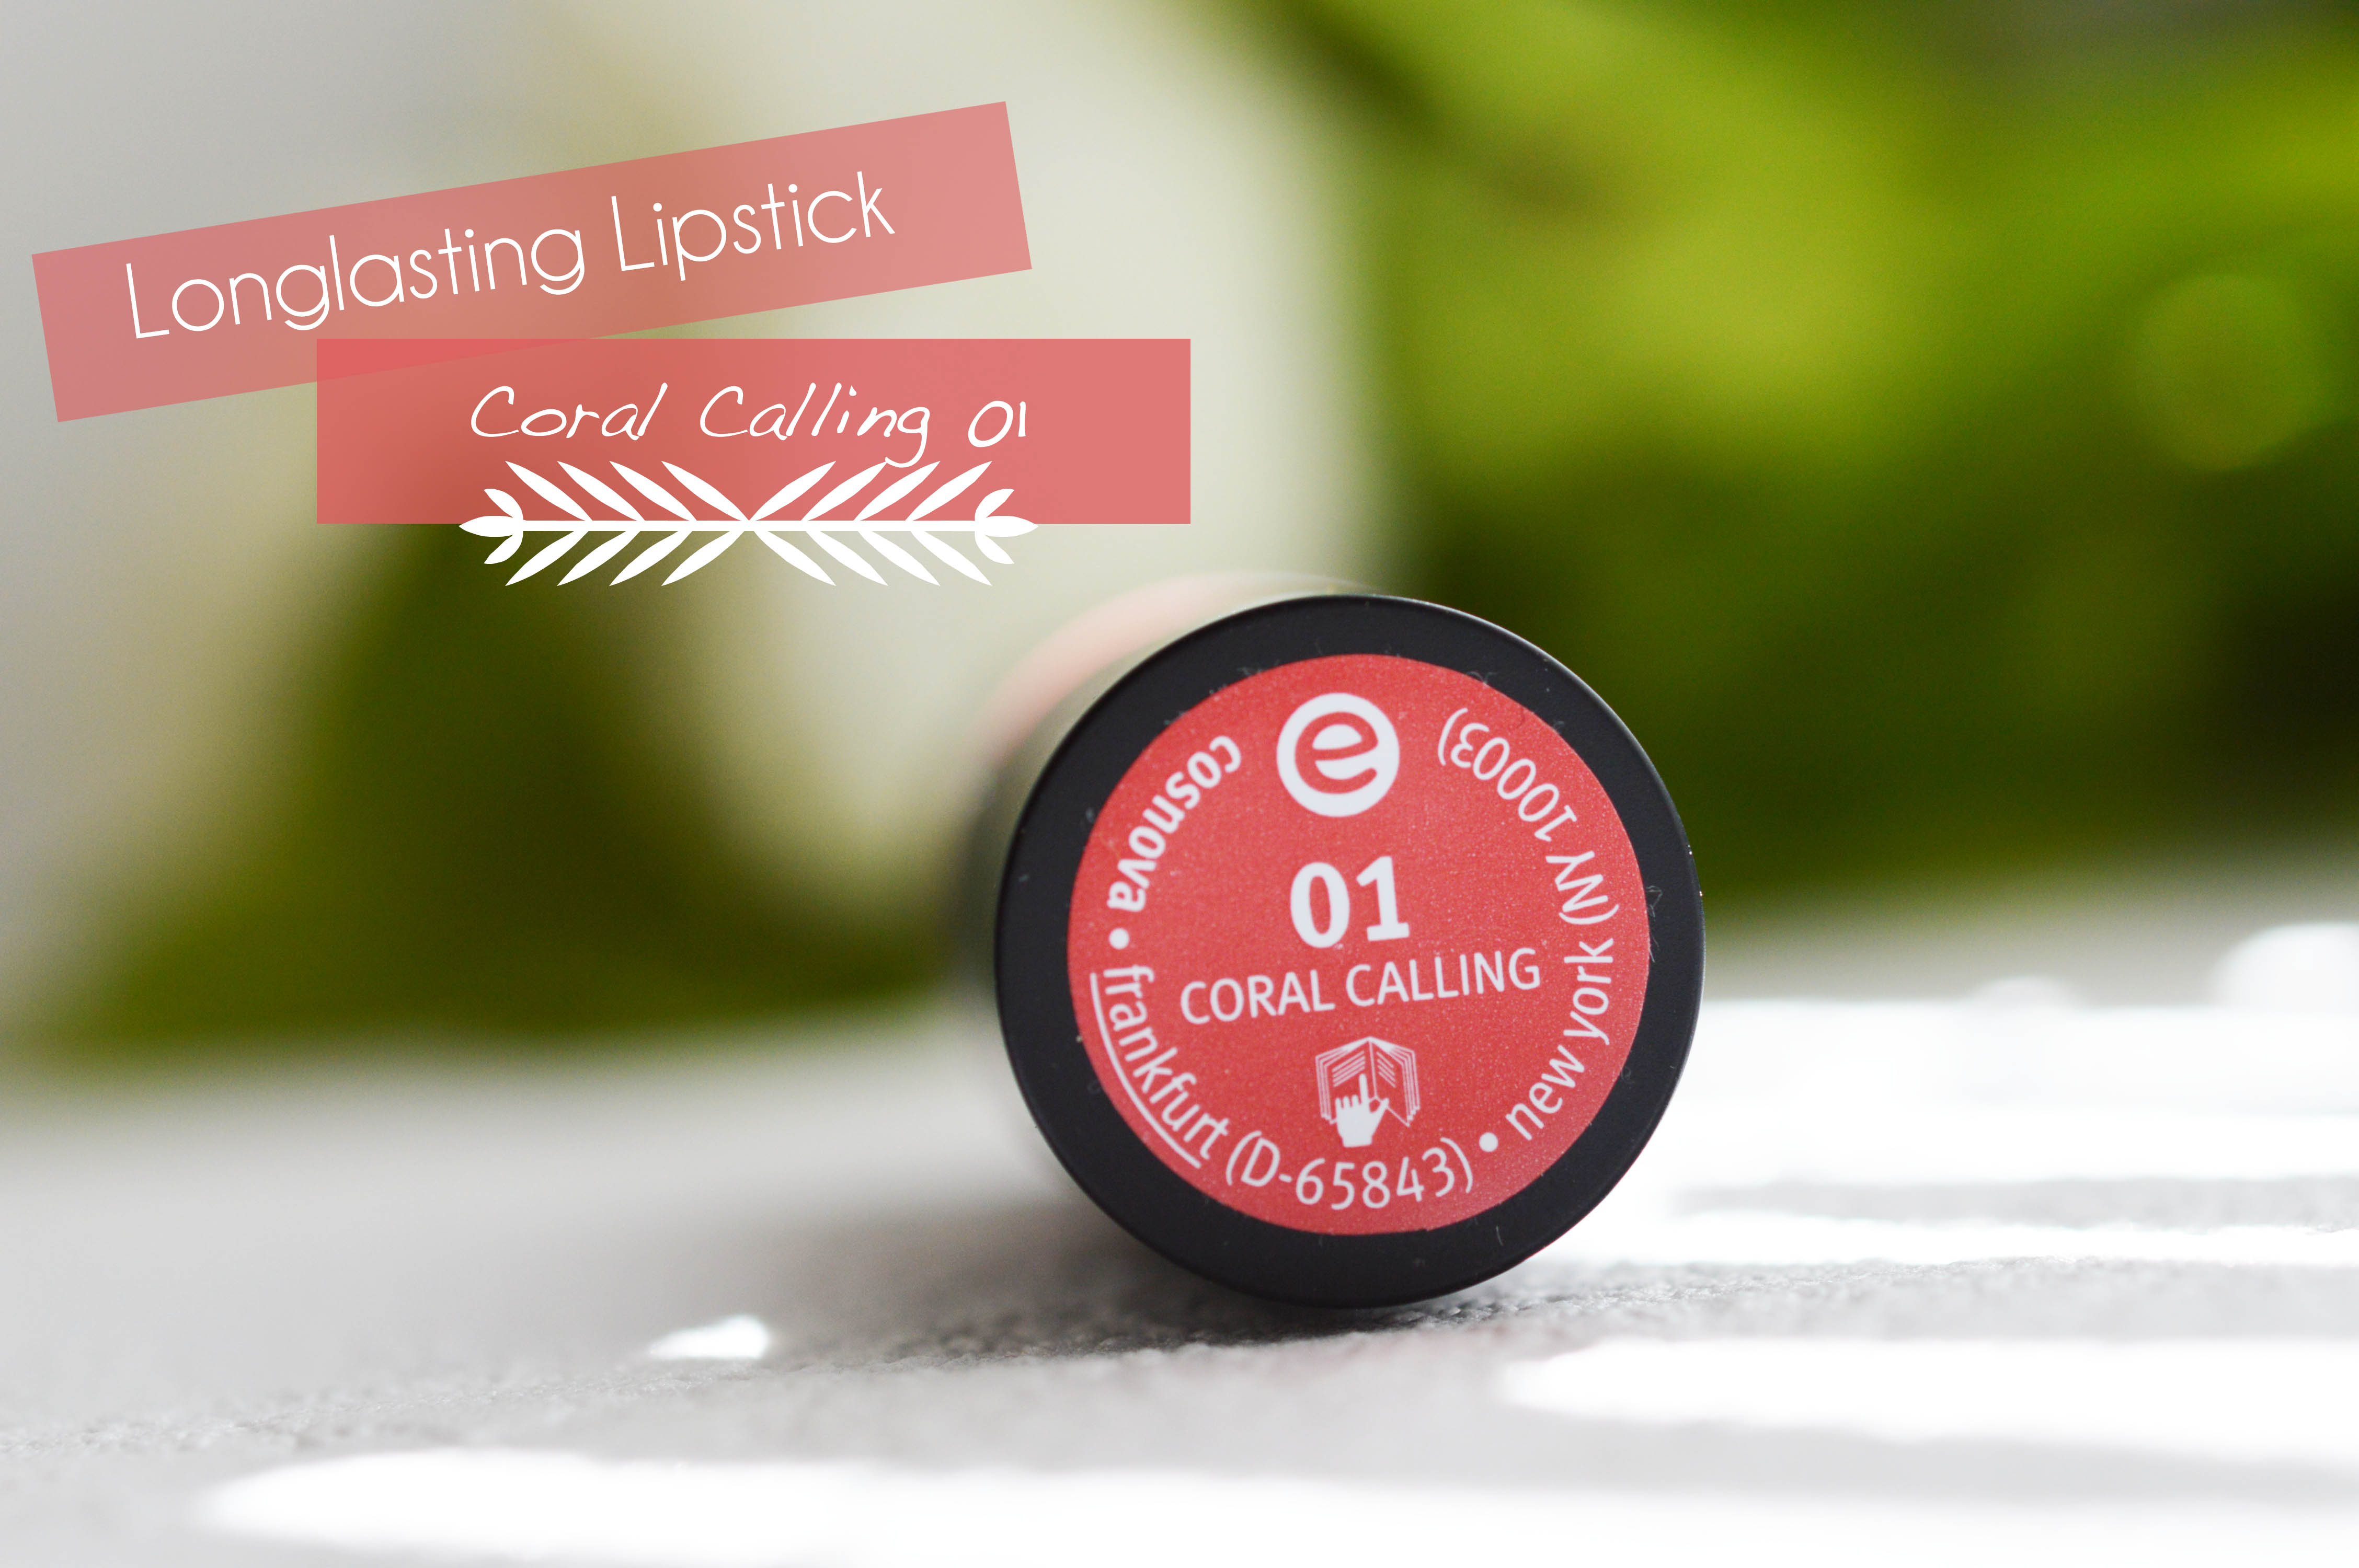 ALITTLEB_BLOG_BEAUTE_ESSENCE_LA_MARQUE_QUIL_FAUT_ENVIER_A_NOS_COPINES_FRONTALIERES_LONGLASTING_LIPSTICK_CORAL_CALLING